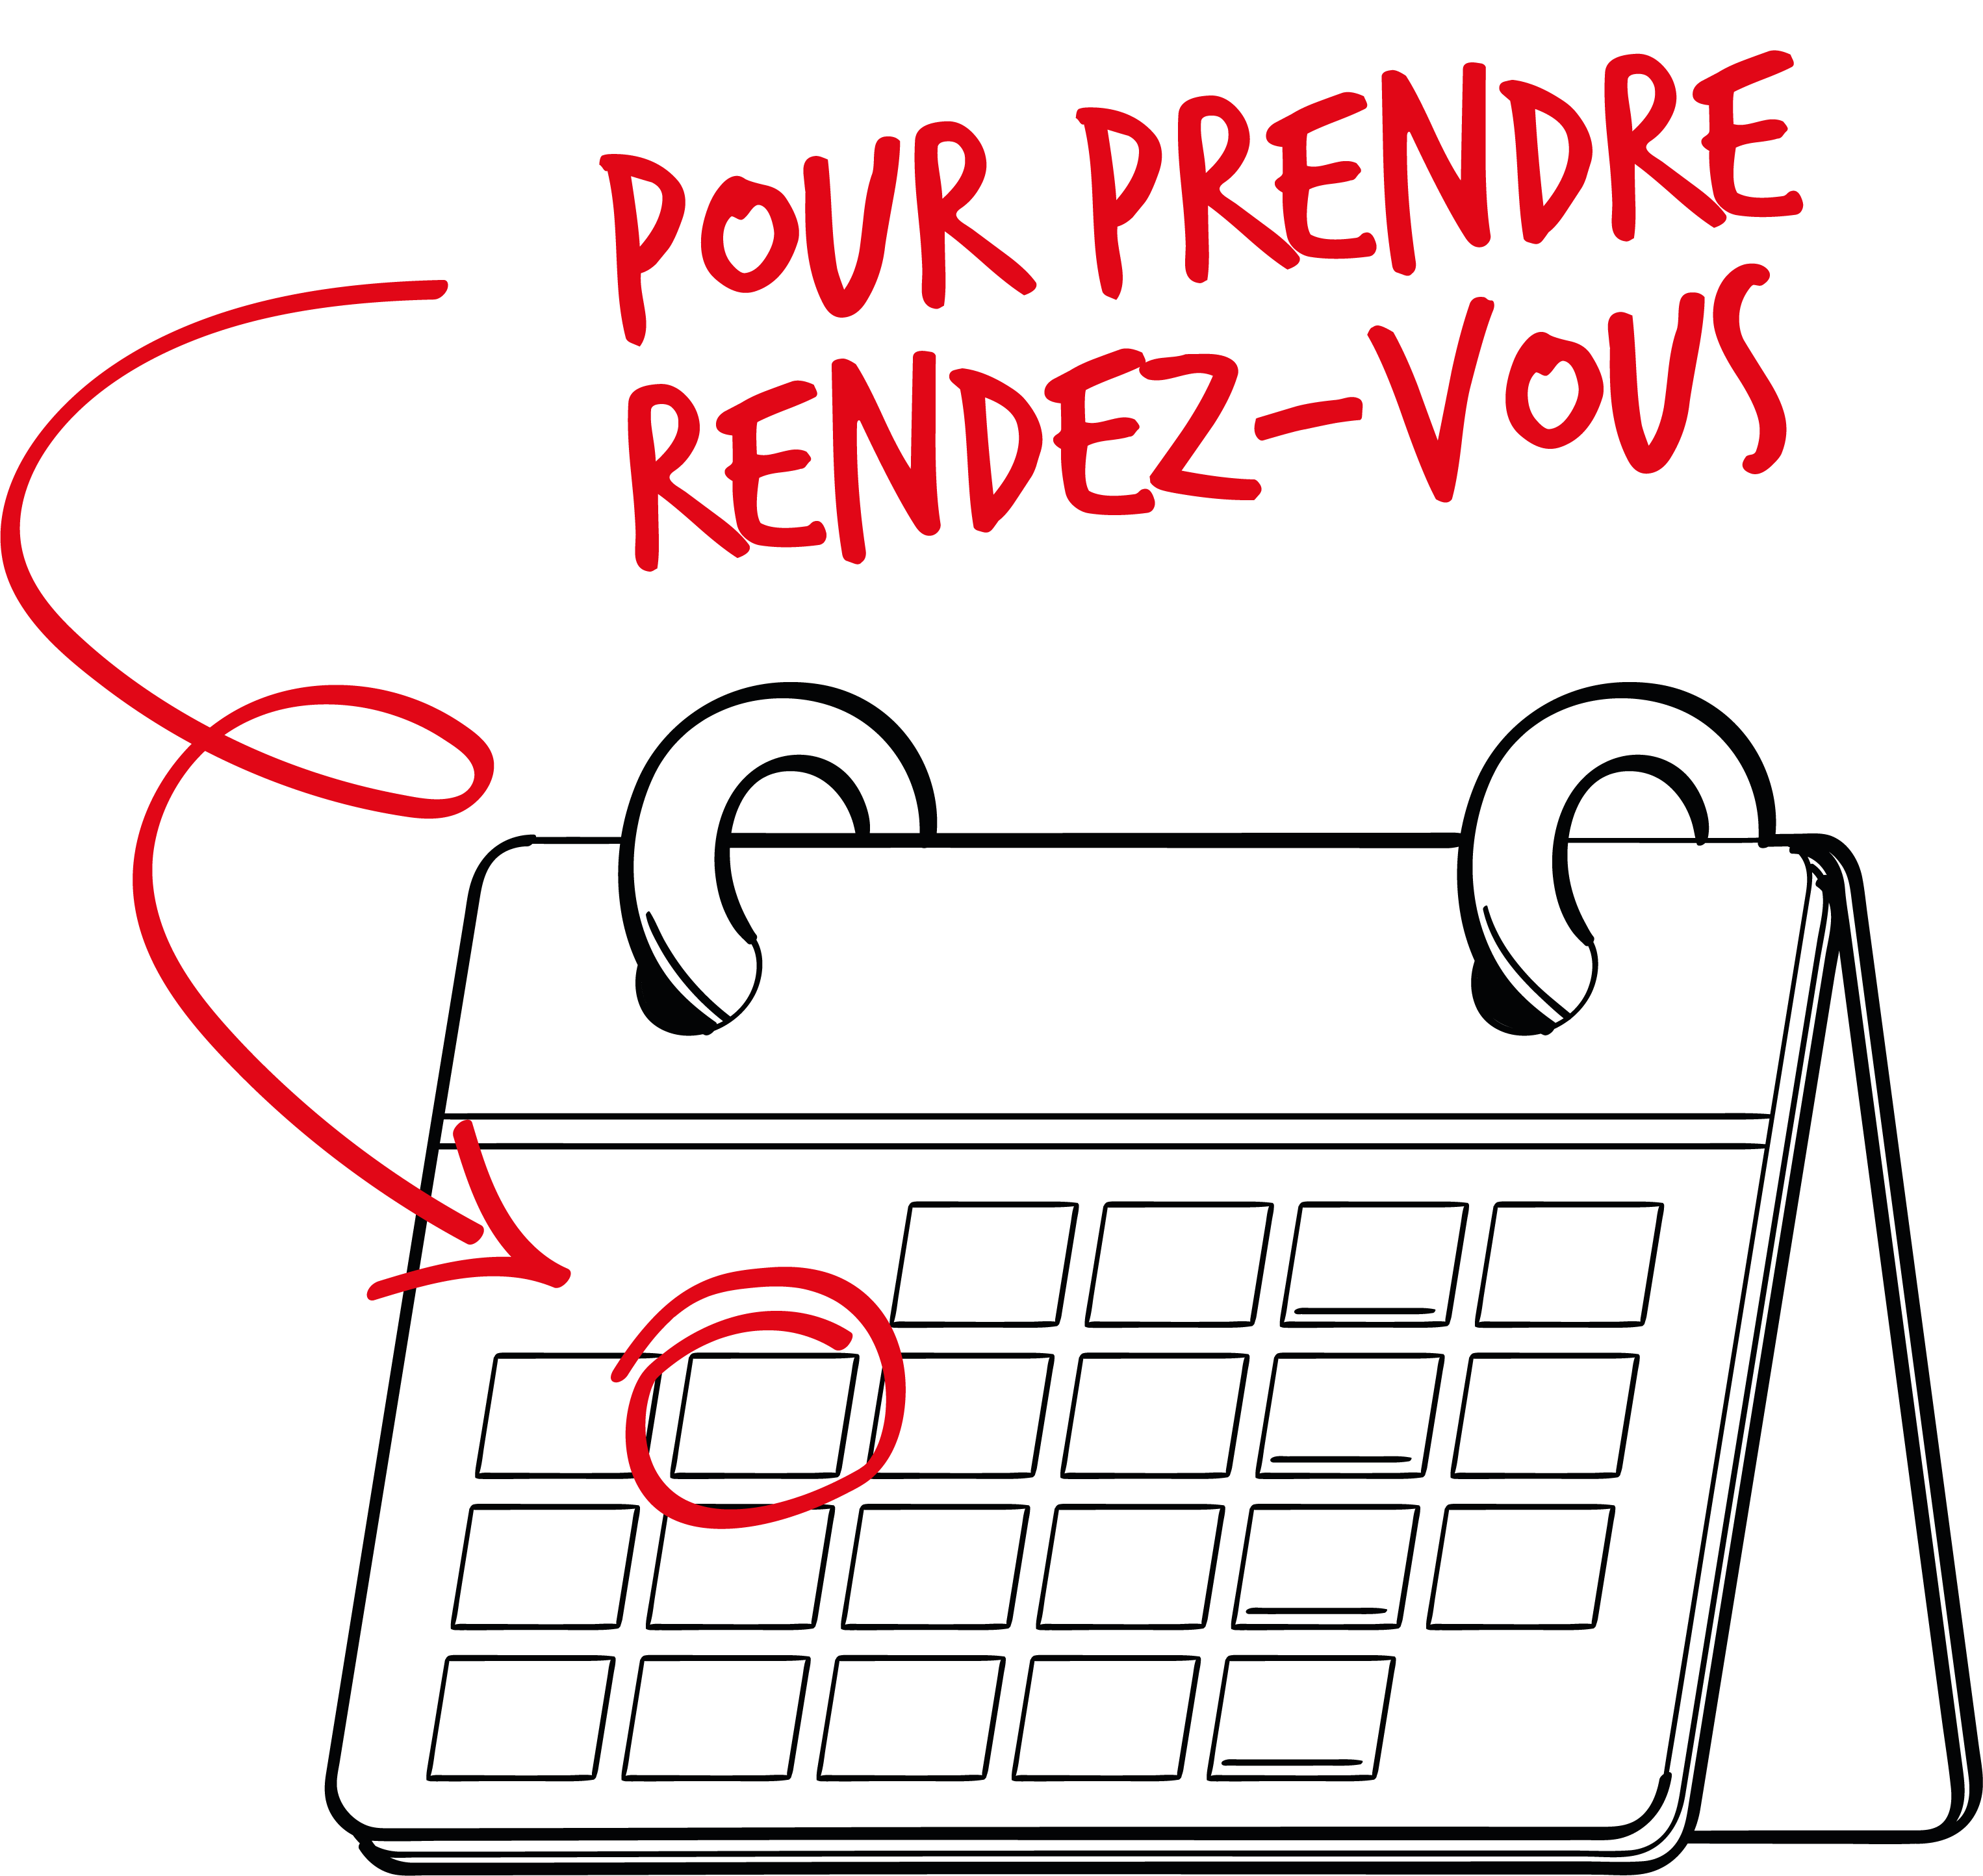 rendez-vous AIDEOR, appointment AIDEOR